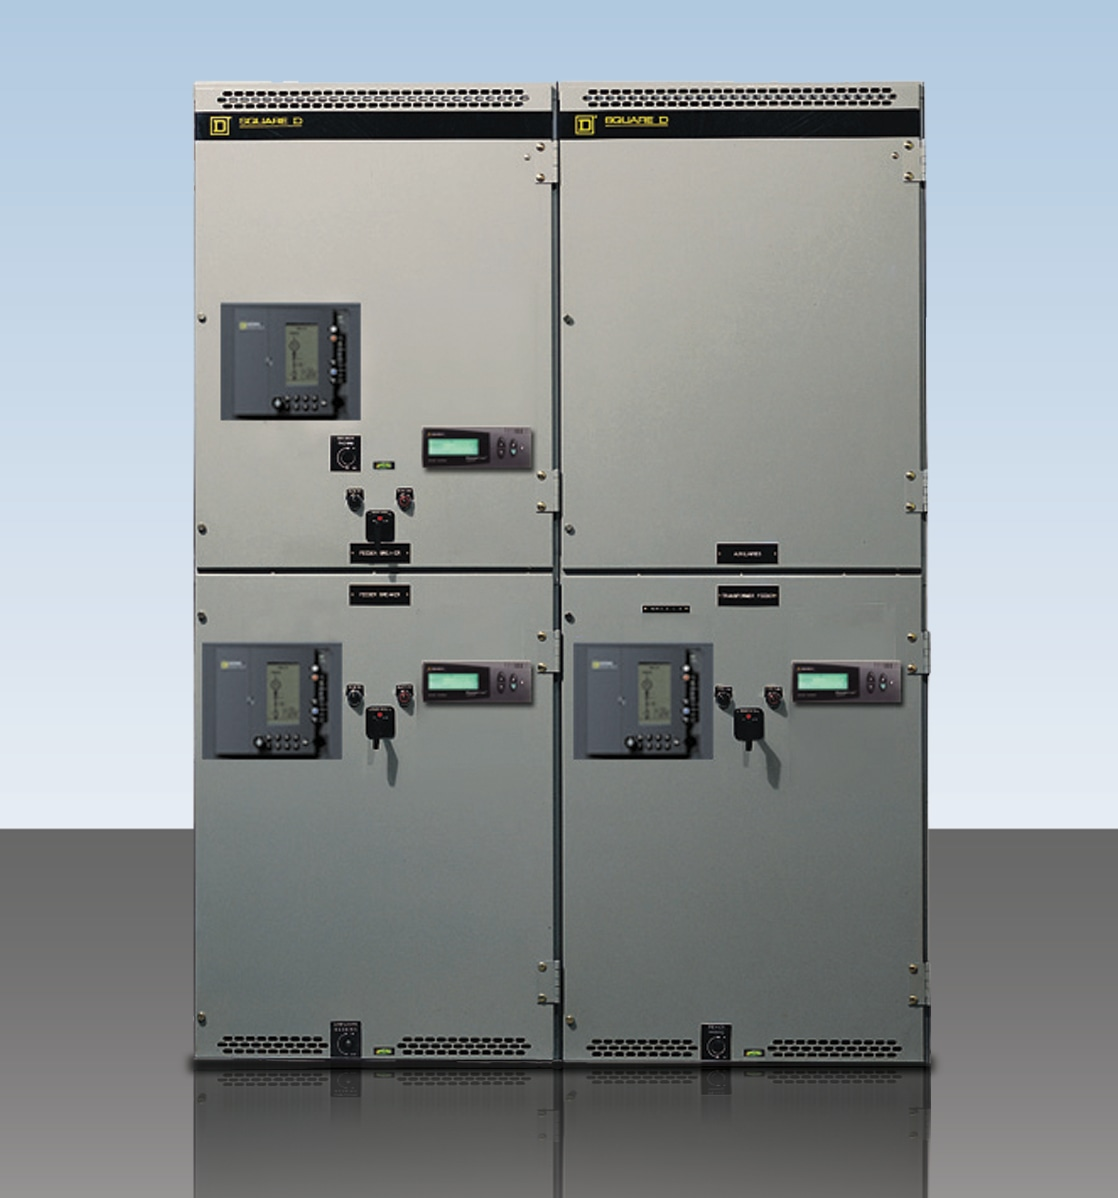 Powerlogic monitoring system from Square D by Schneider Electric